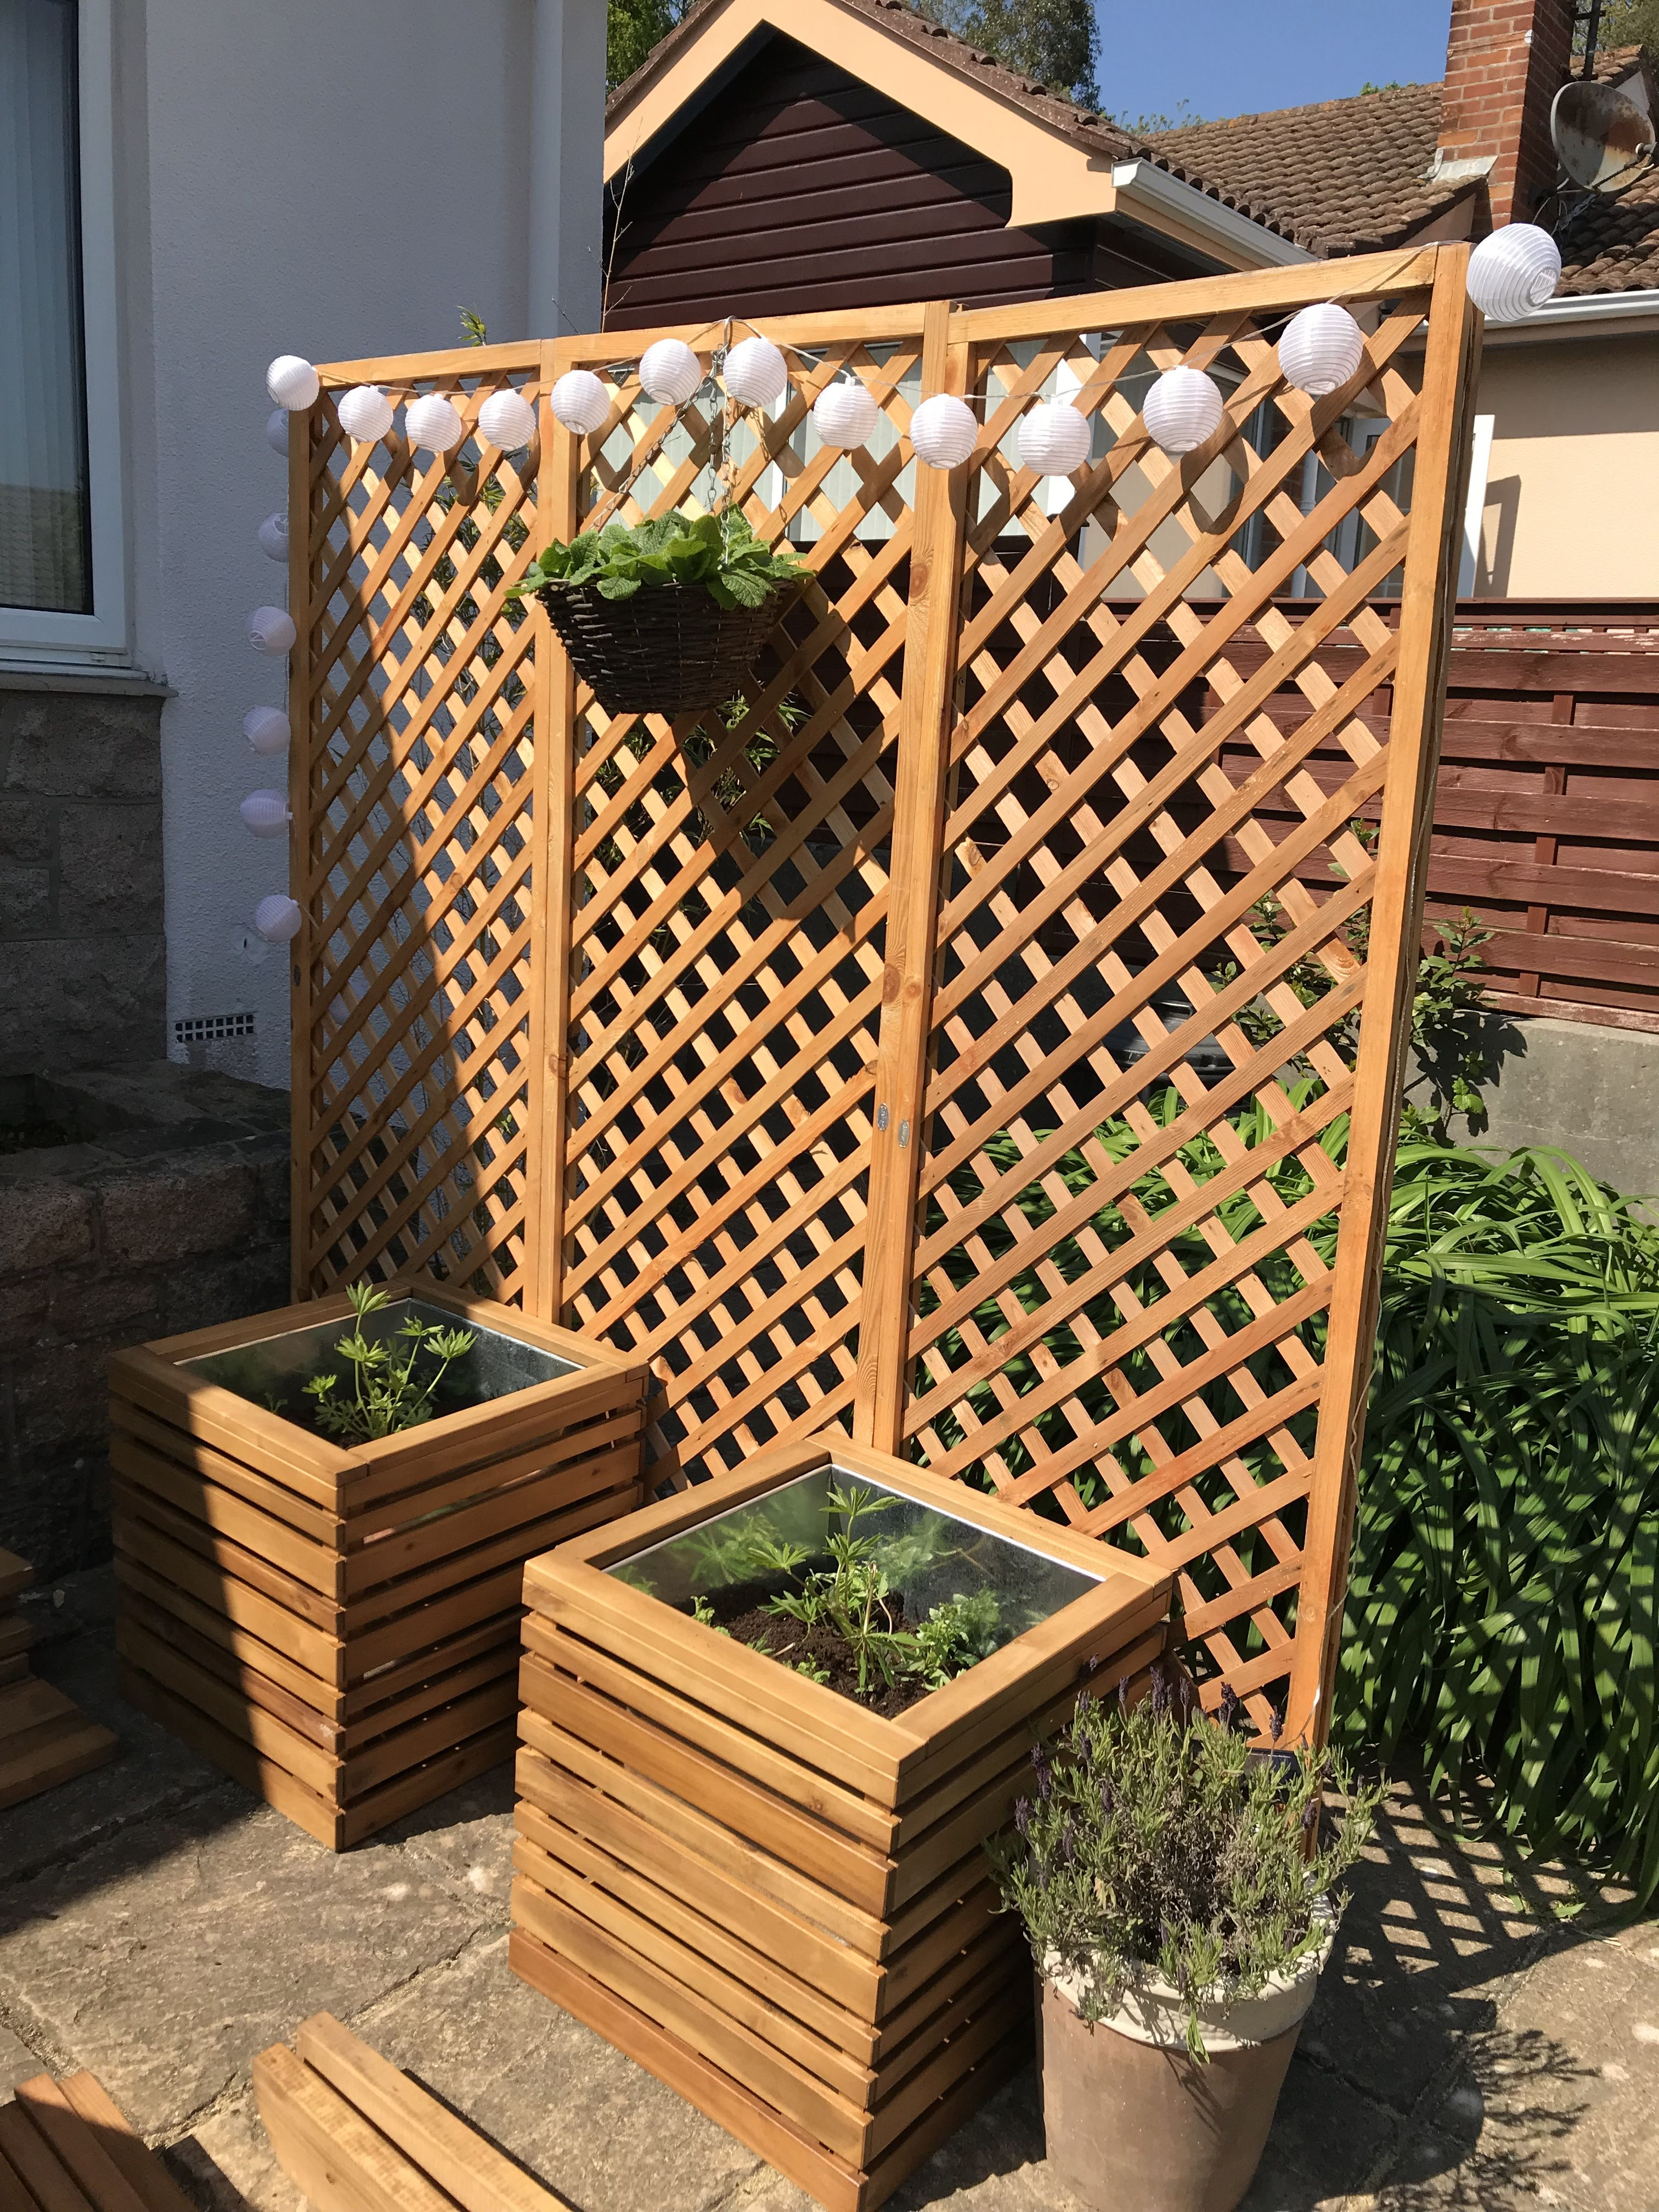 Privacy screen made with trellis and wooden planters (With